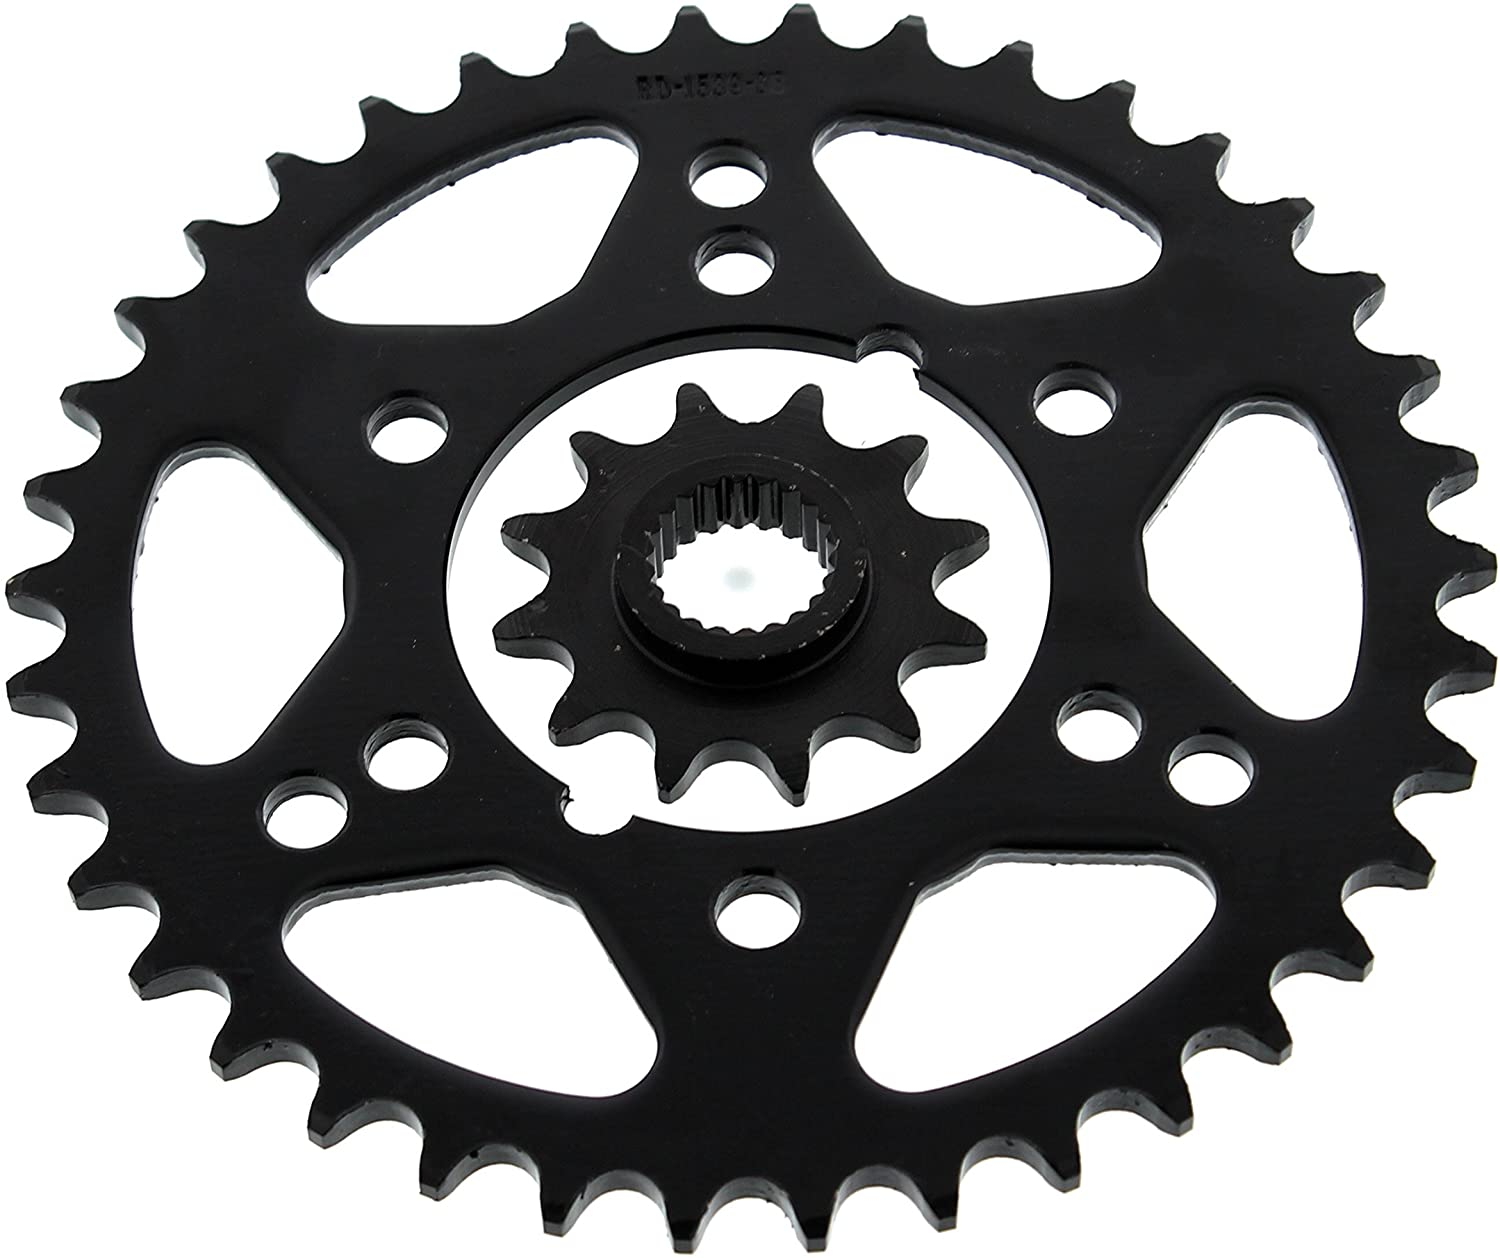 1995-1998 Polaris Magnum 425 2X4 Front and Rear Steel Sprocket 12/38